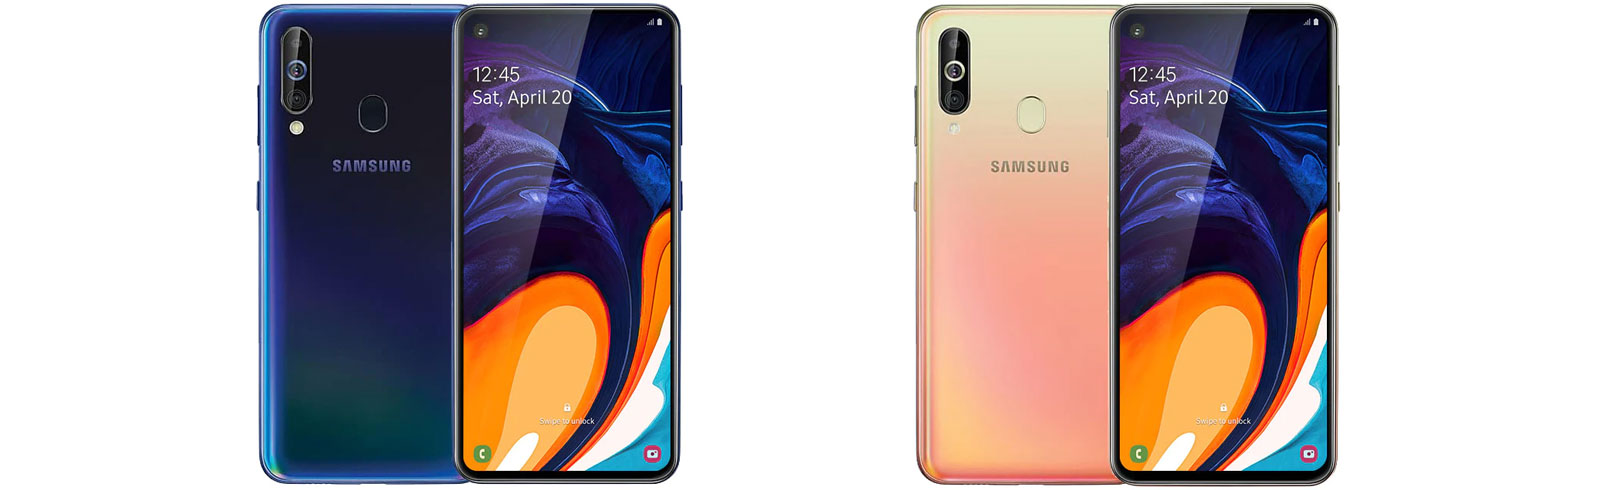 Our in-depth Samsung Galaxy A60 review is ready